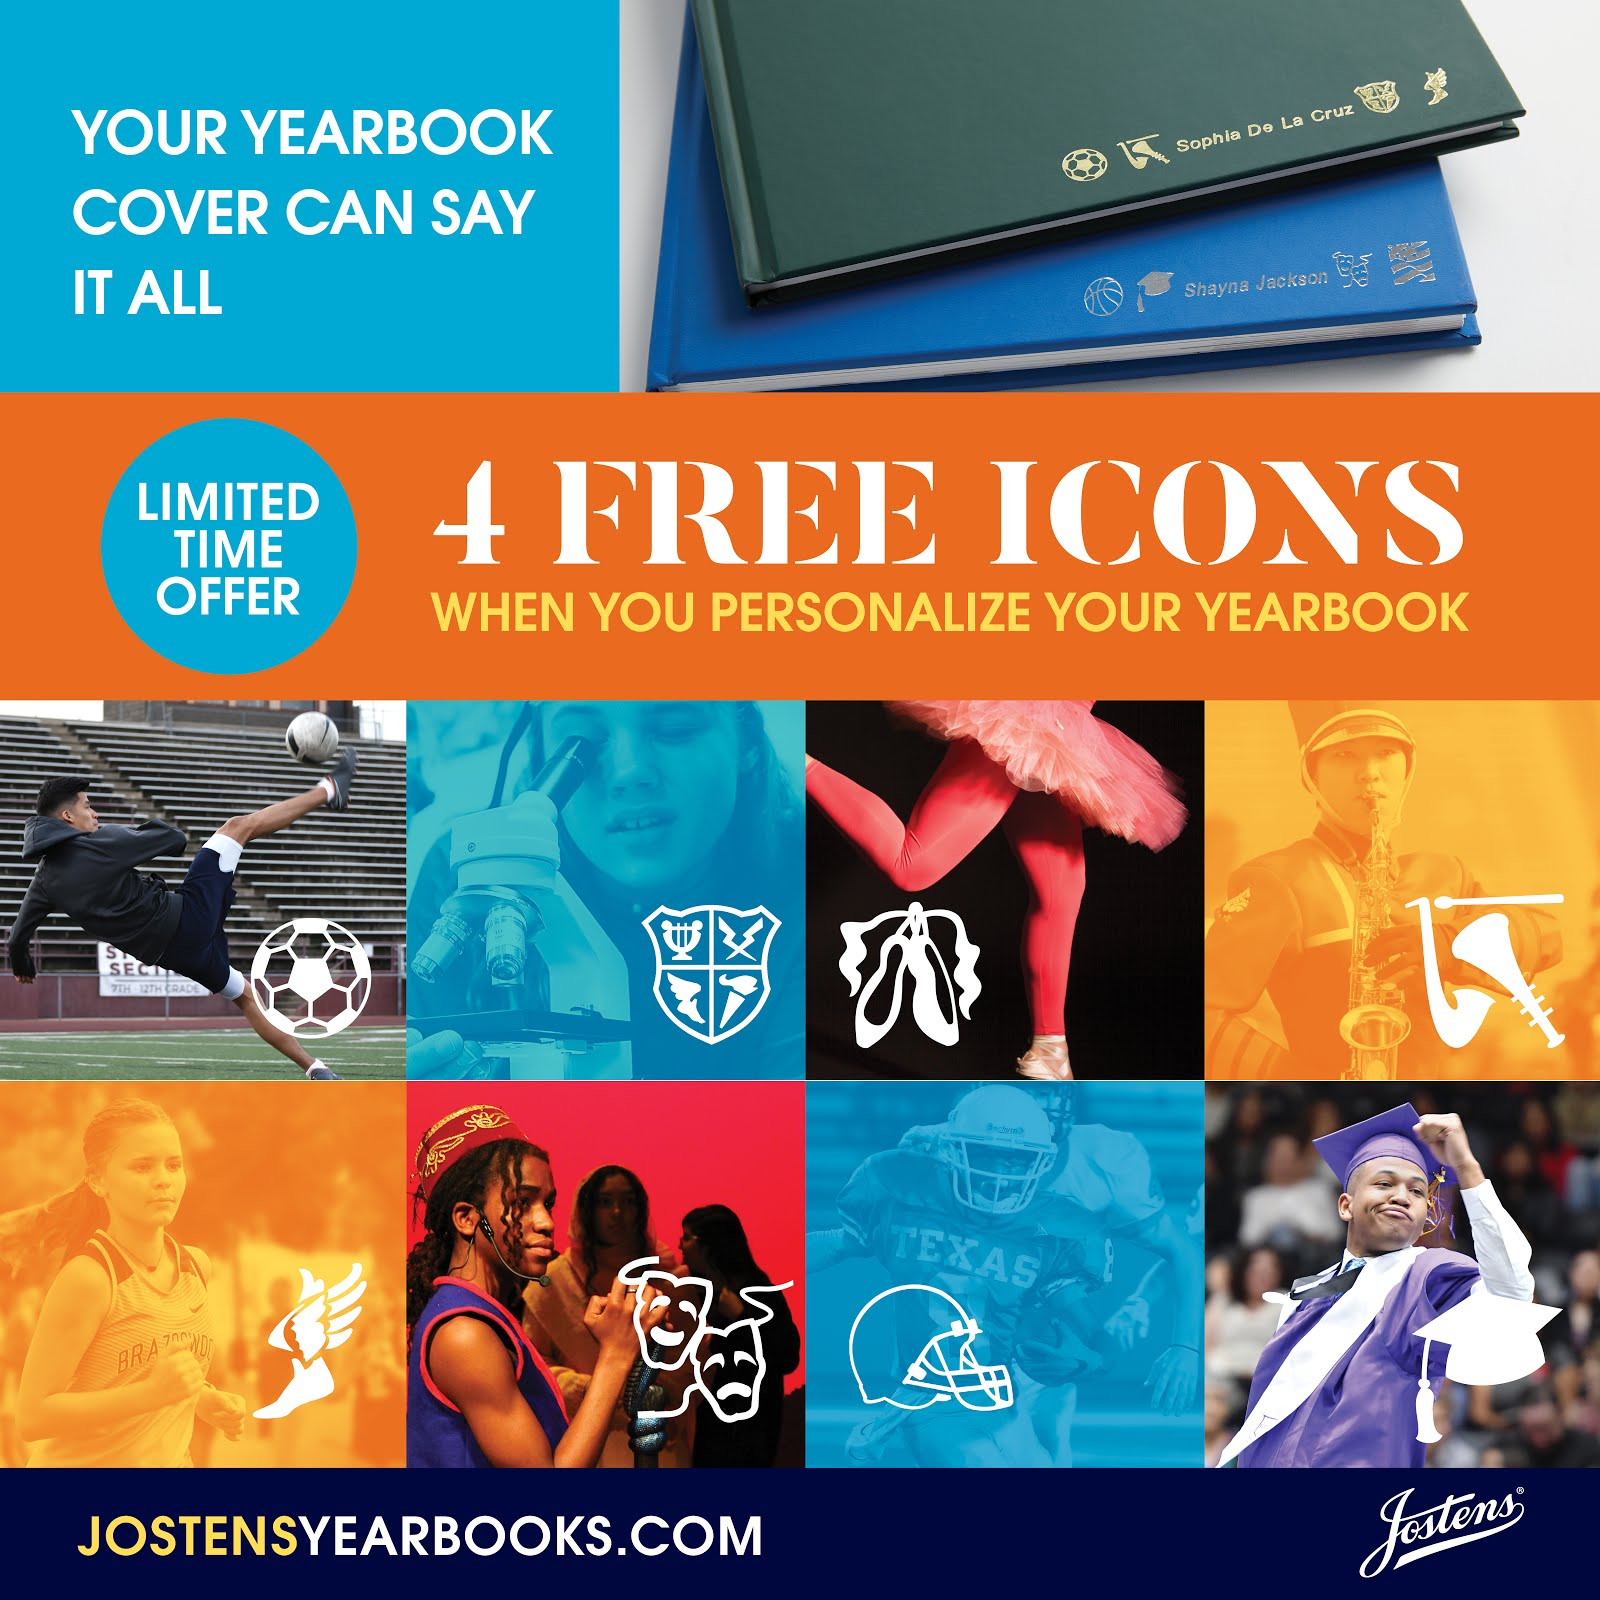 PRE-ORDER YOUR 2021 YEARBOOK